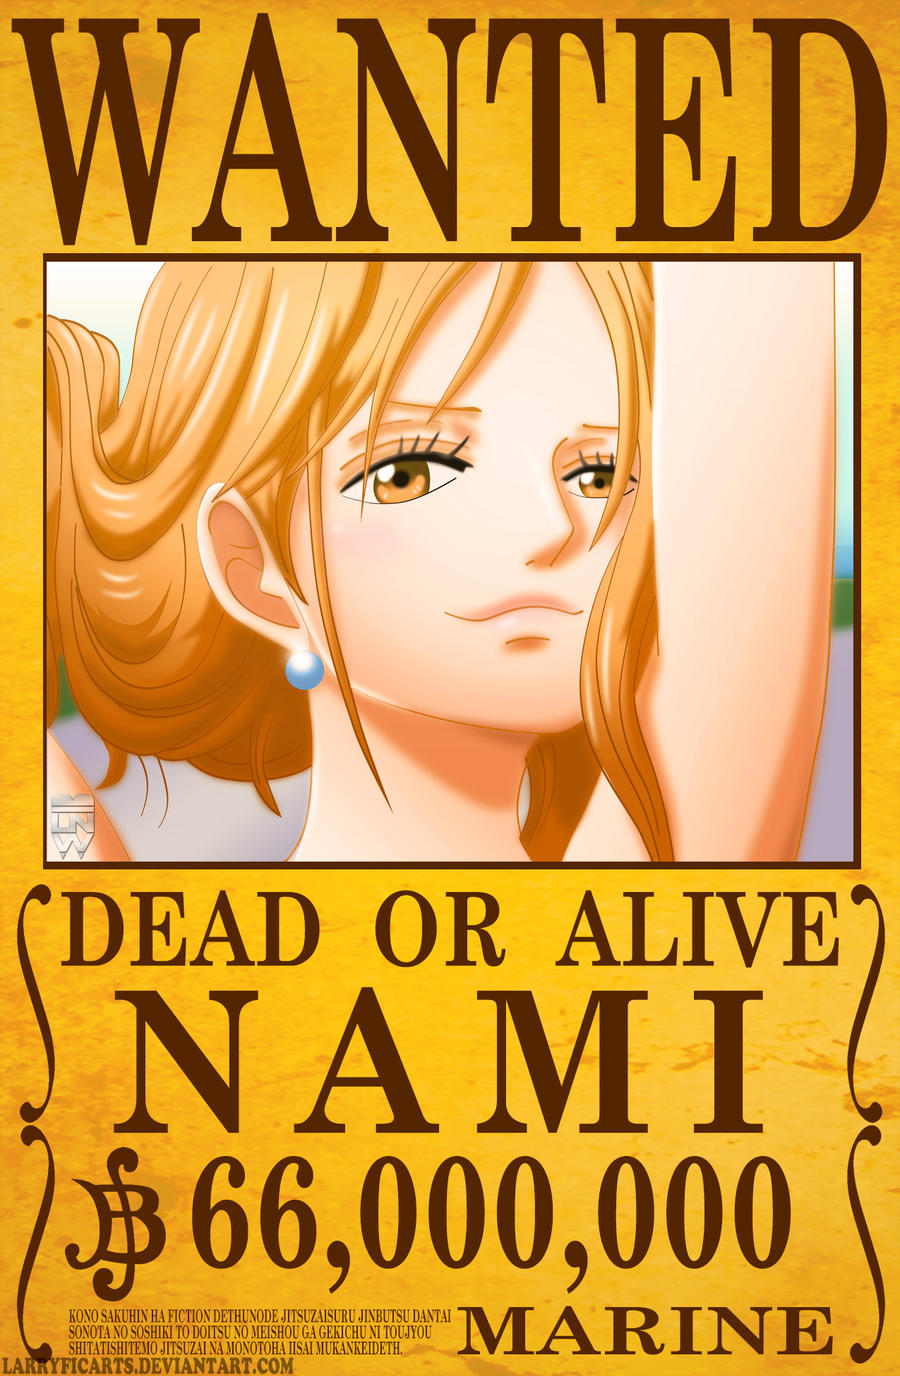 Nami wanted poster by larryficarts on deviantart - One piece wanted luffy ...